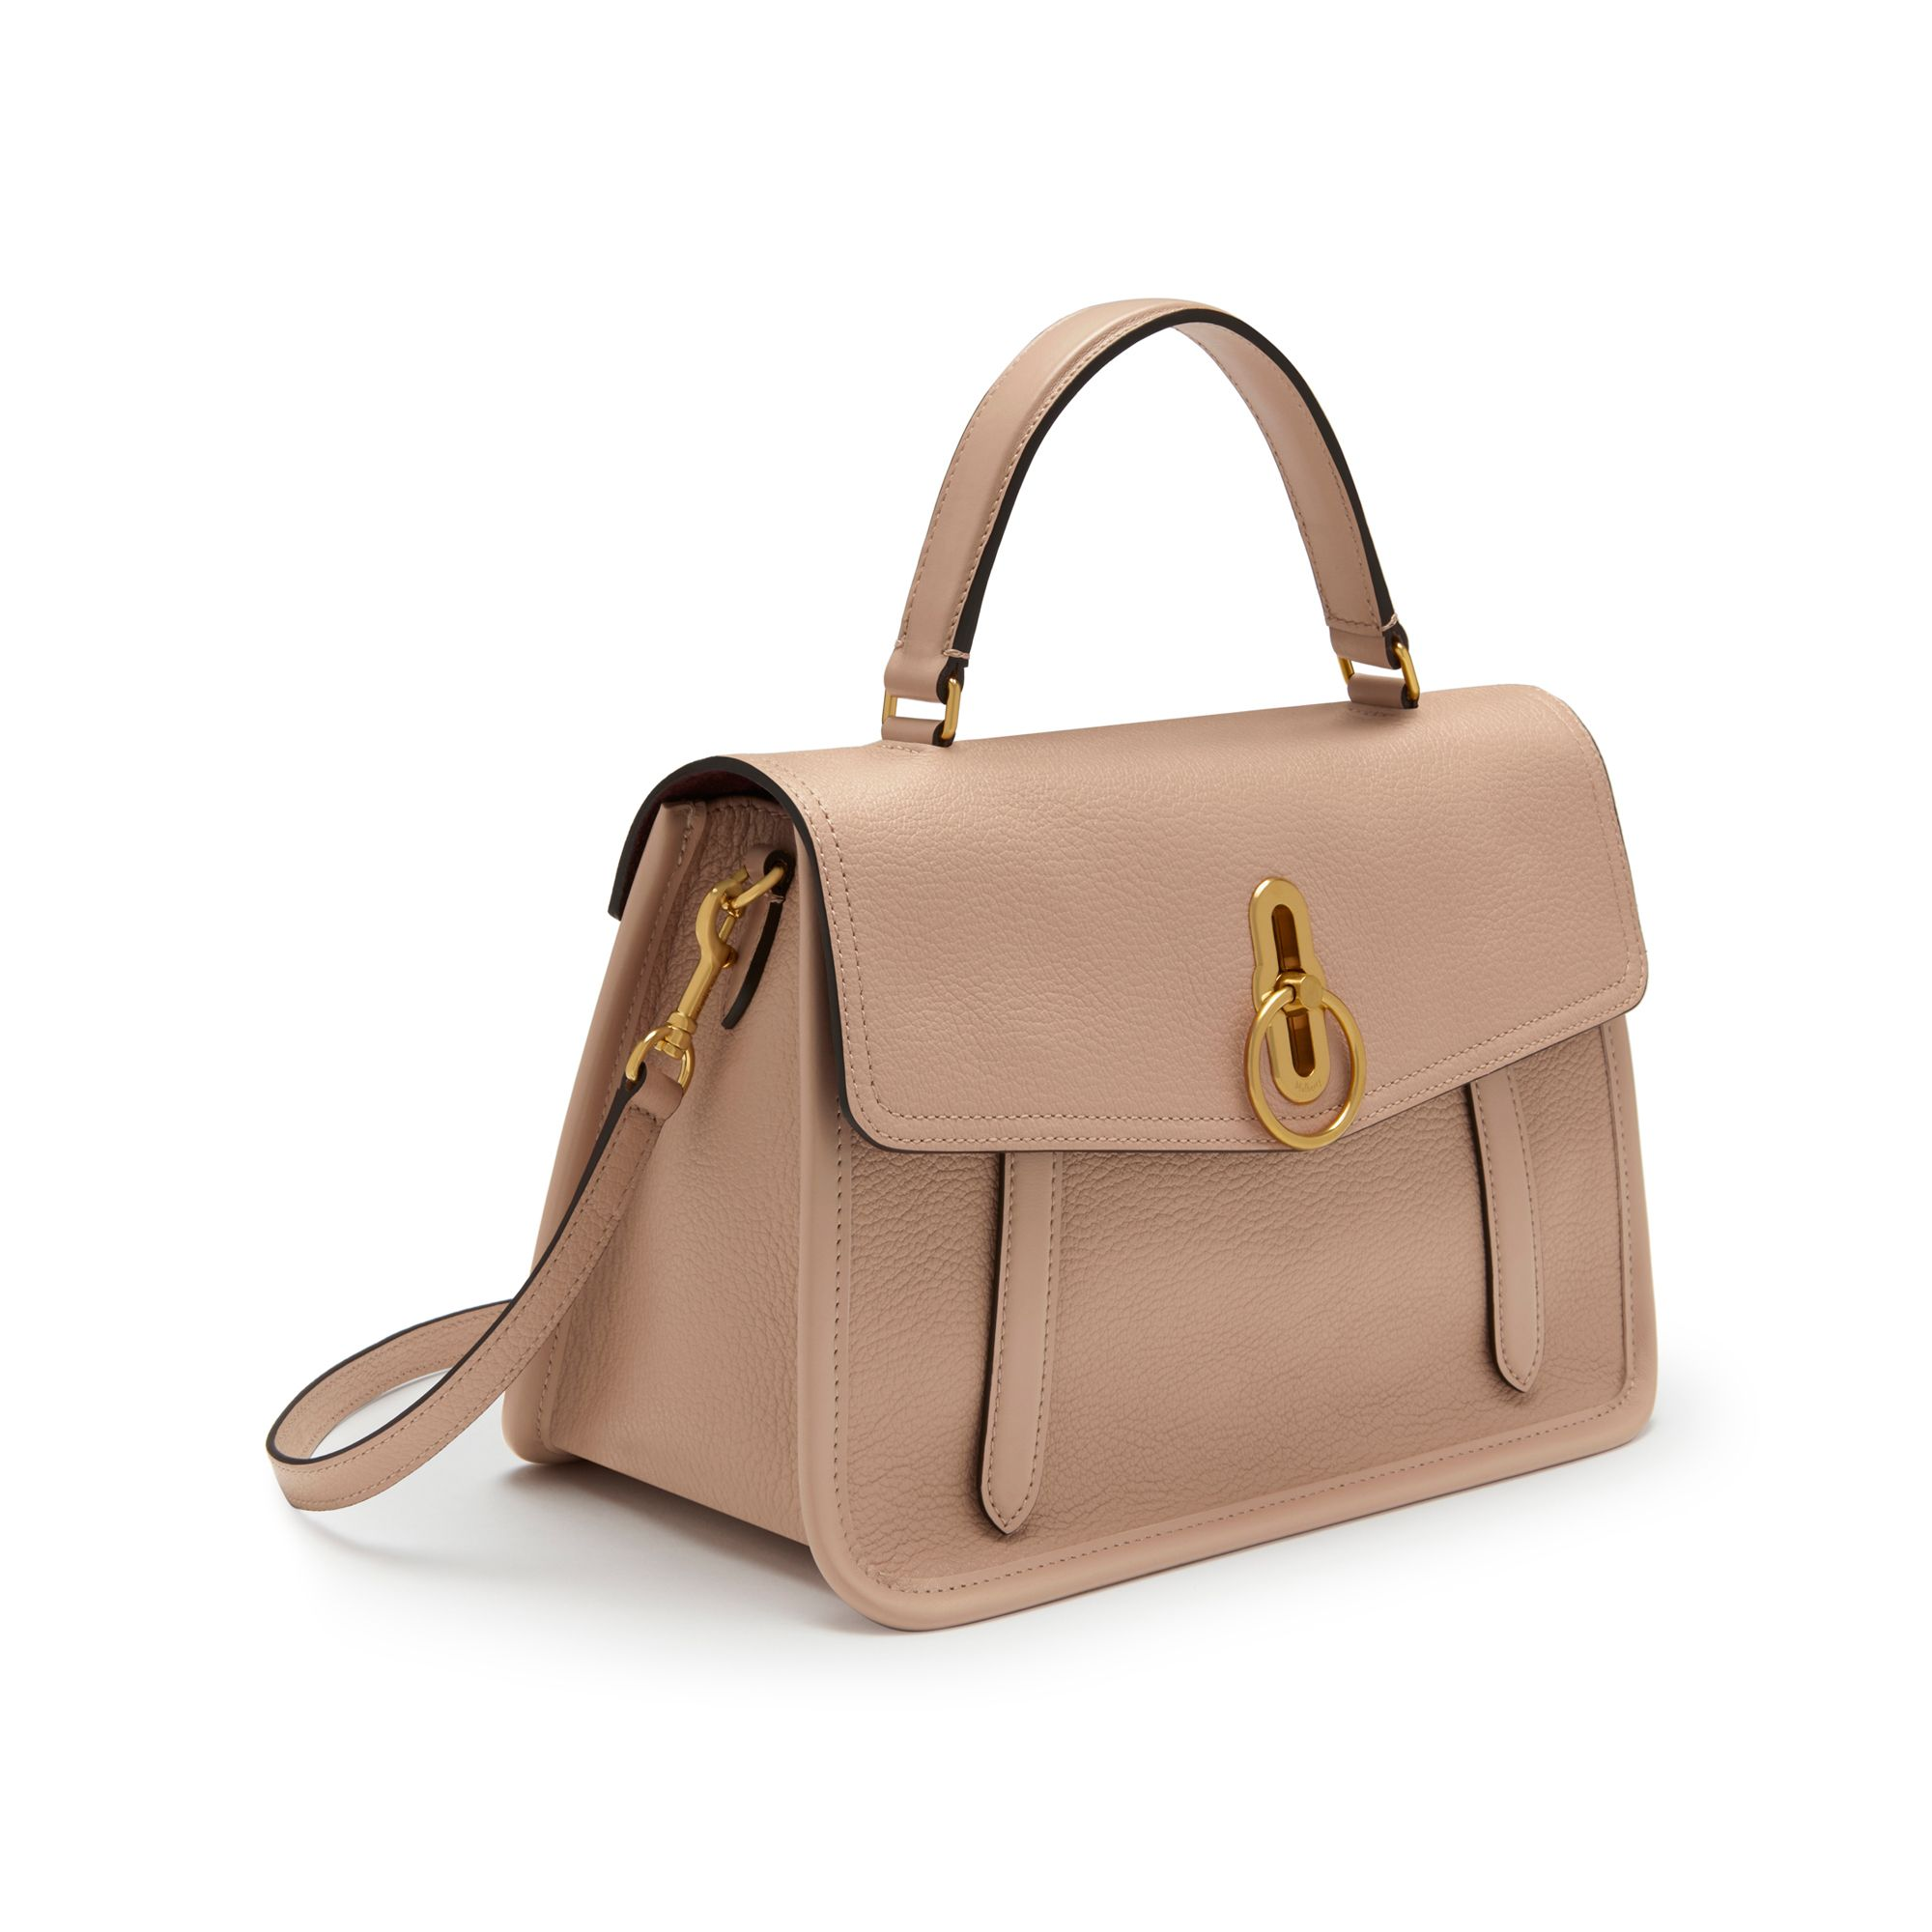 Shop the Gracy Satchel in Rosewater Goat  amp  Smooth Calf Leather at  Mulberry.com 264934f52c760